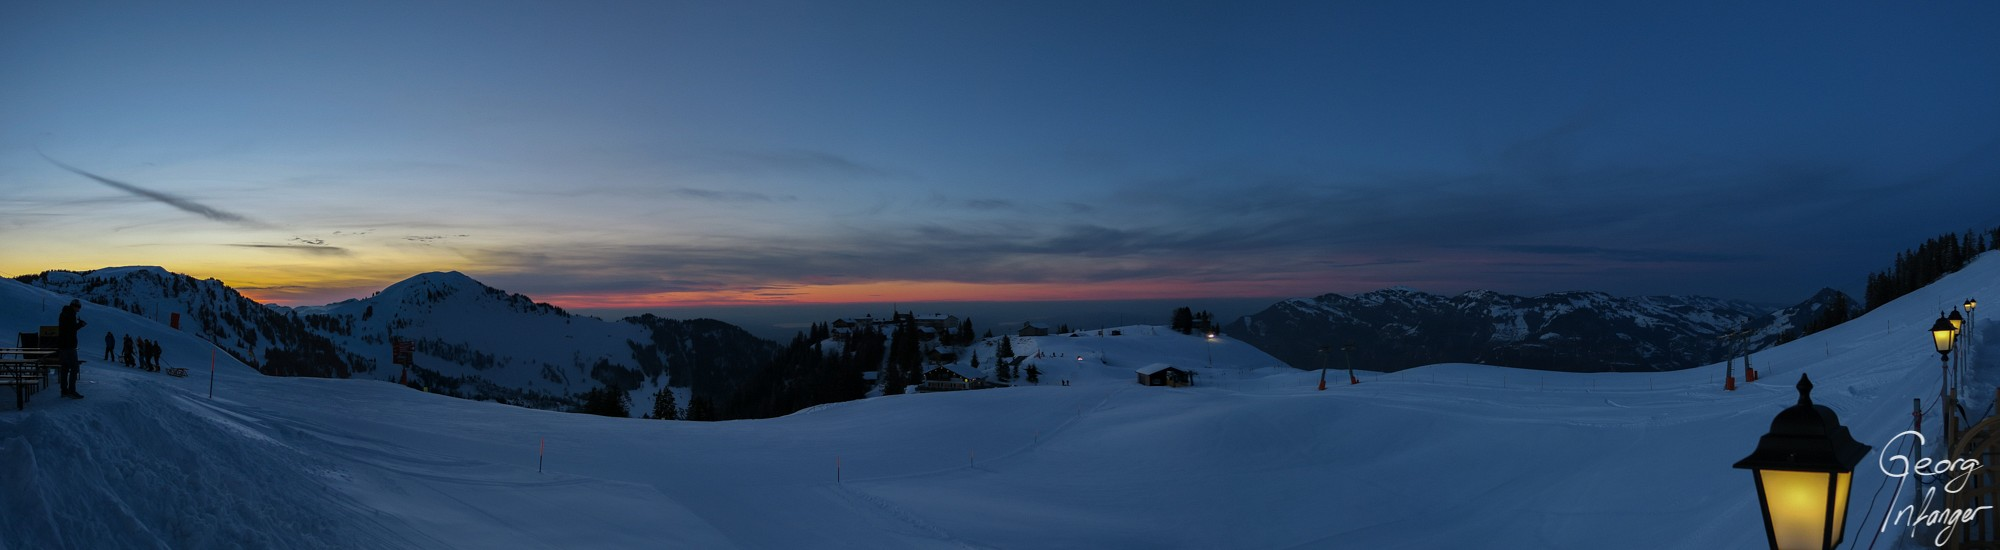 -abendlicht eveninglight klewenalp kms last light late day light panorama schnee schweiz sunset switzerland teamevent winter